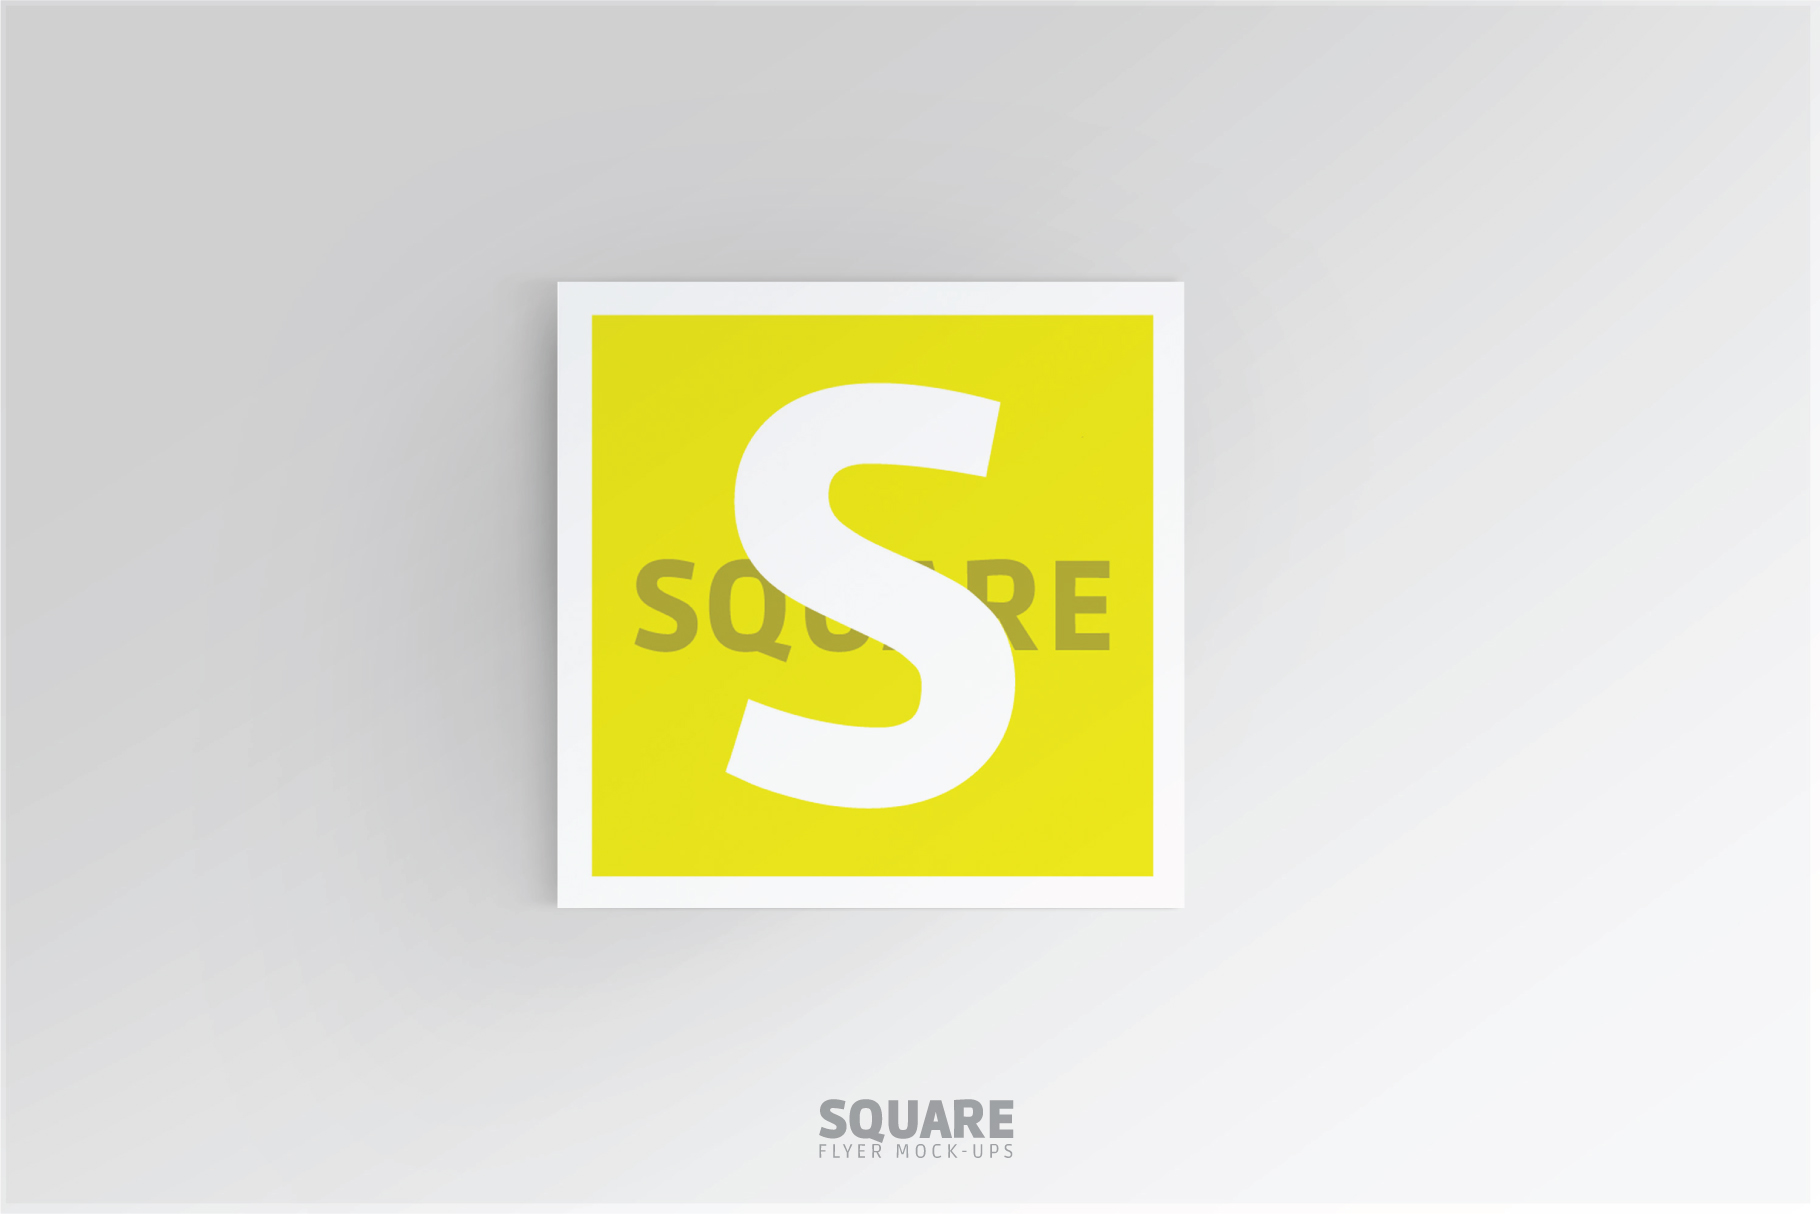 Square Flyer Mock-Up example image 7